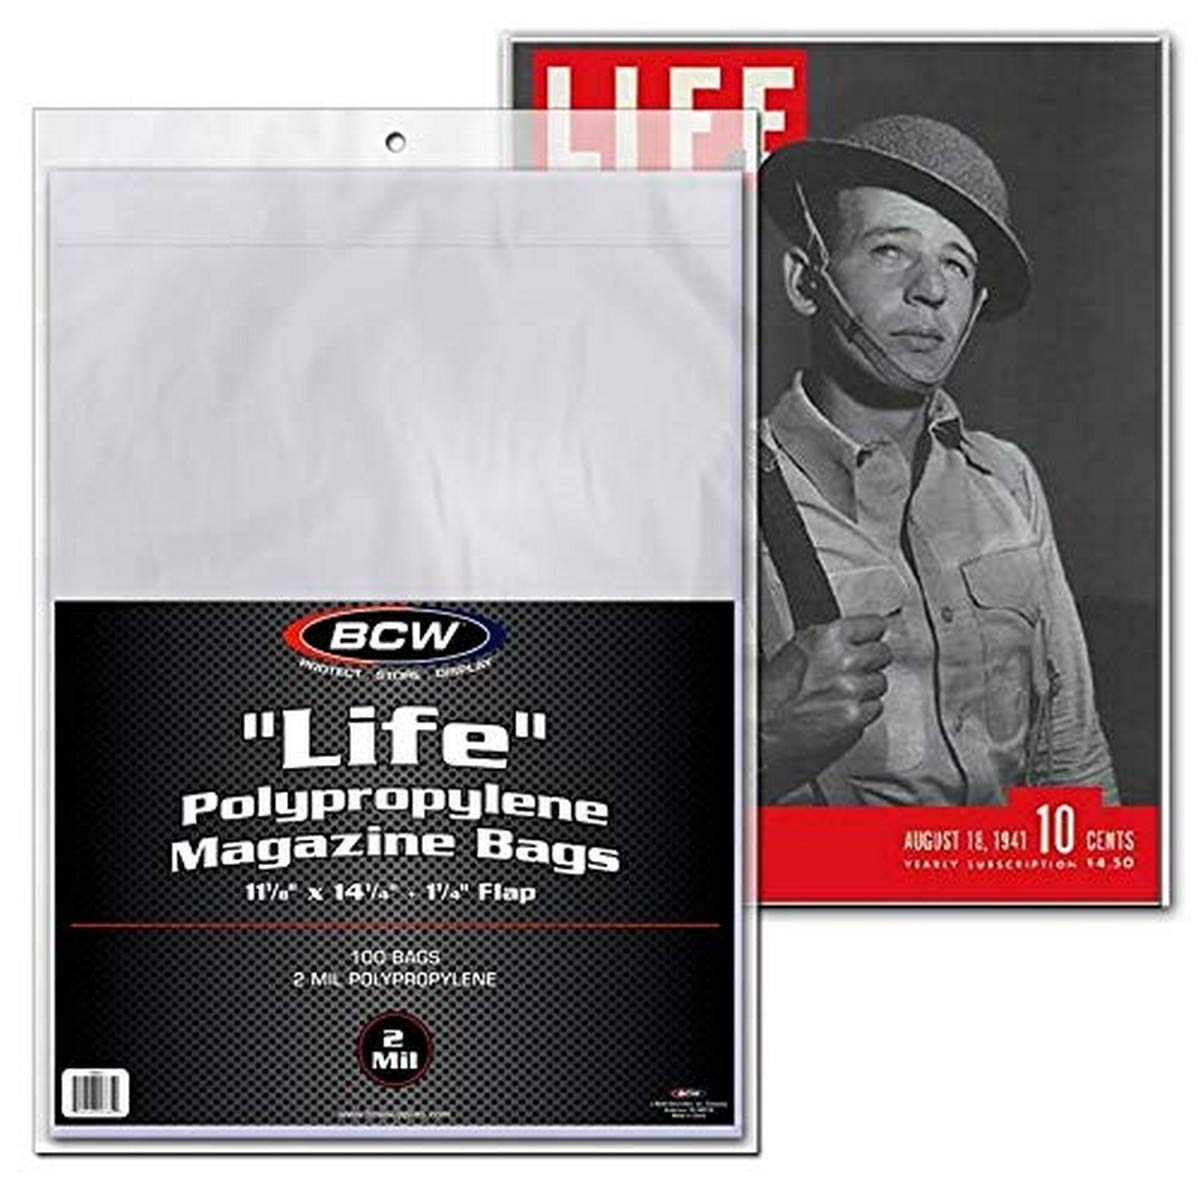 "LIFE"" Magazine Bags 100 bags 11-1/8"" x 14-1/4"" + 1-1/4"